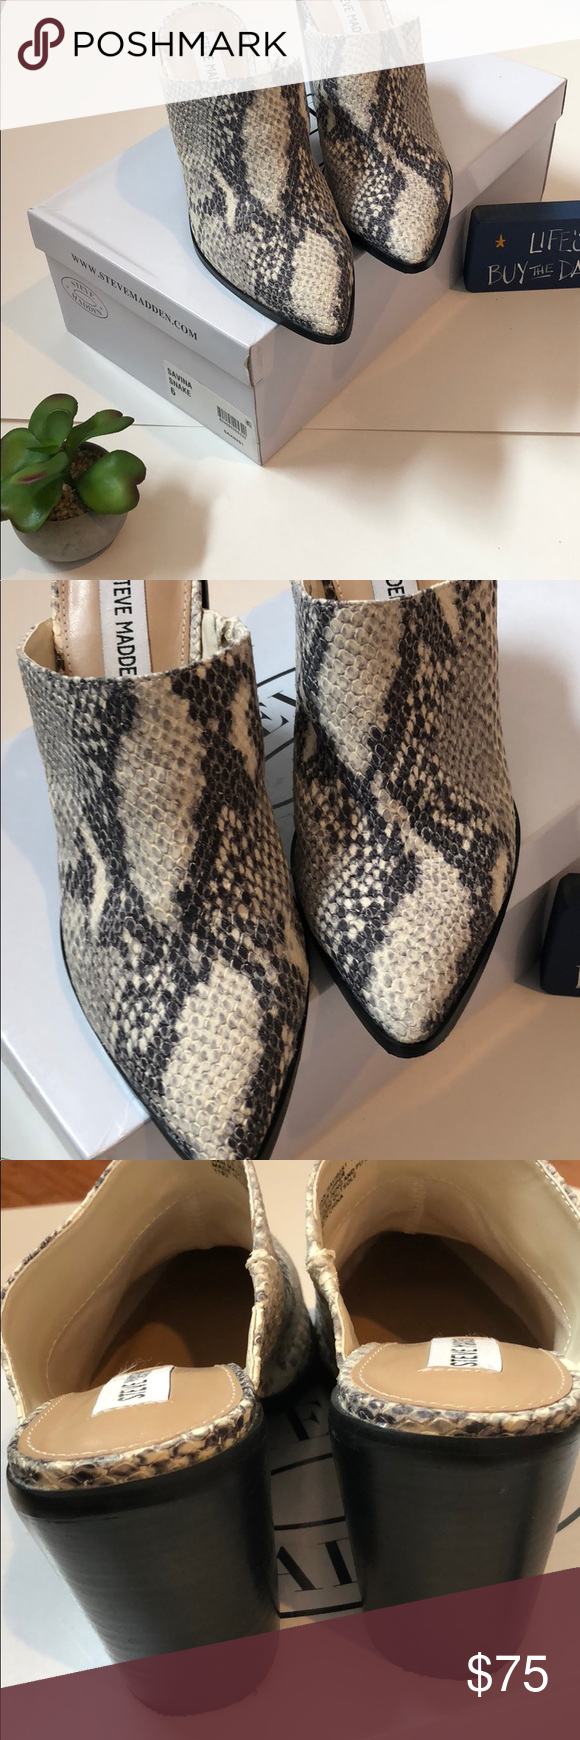 985609aa026 Steve Madden Savina Snake Mules On Trend Gray and white mules. Leather  upper size 6. Goes with everything. Any wear if from trying on in store.  New in Box.